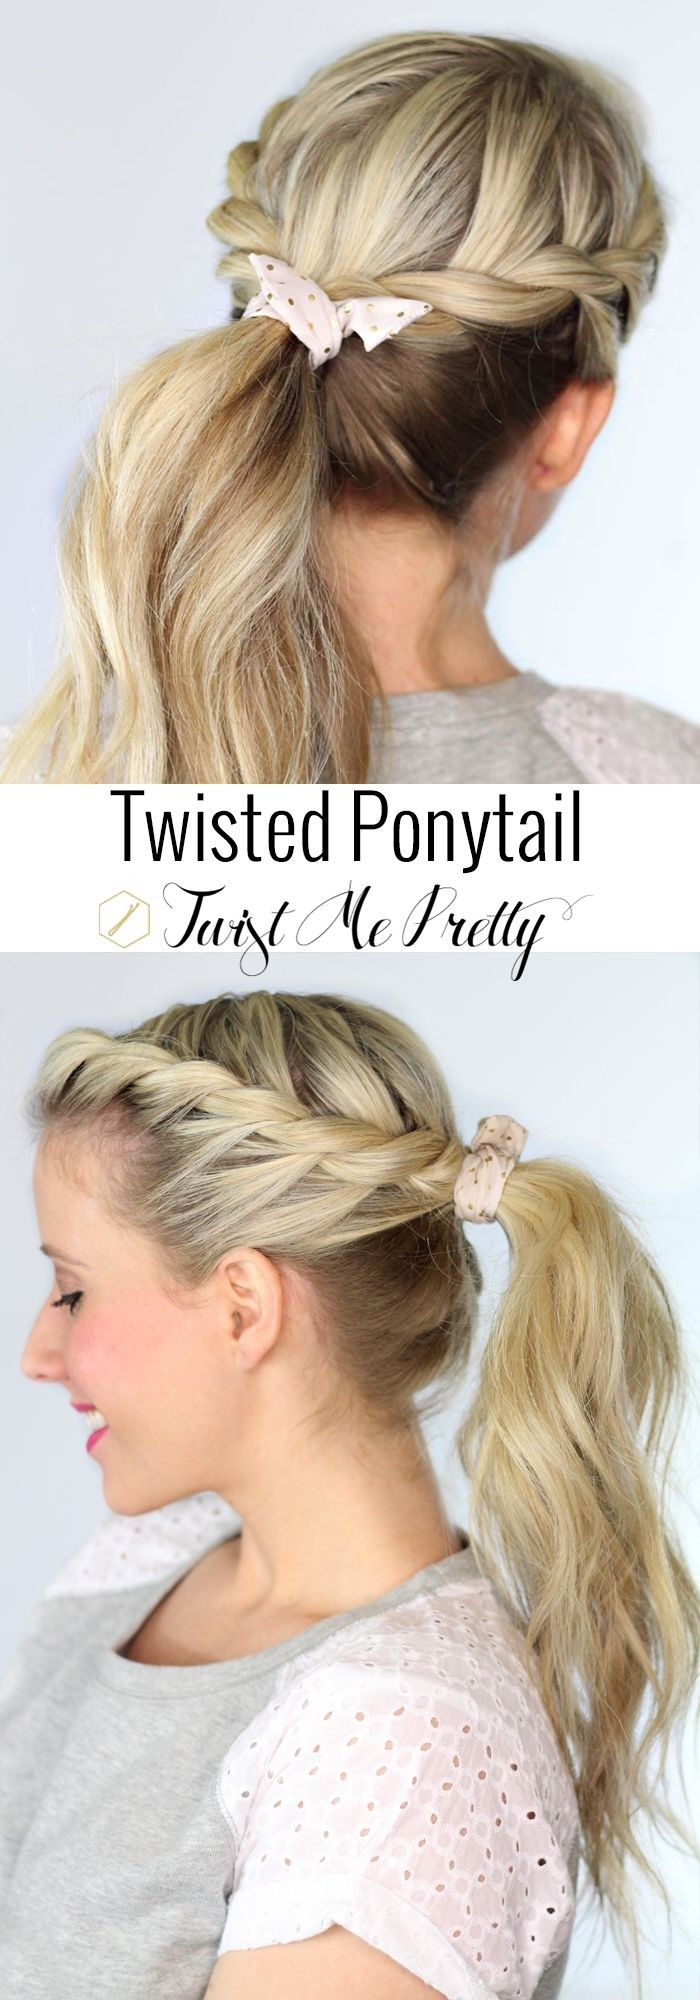 latest ponytail hairstyles for medium-length hair (13)